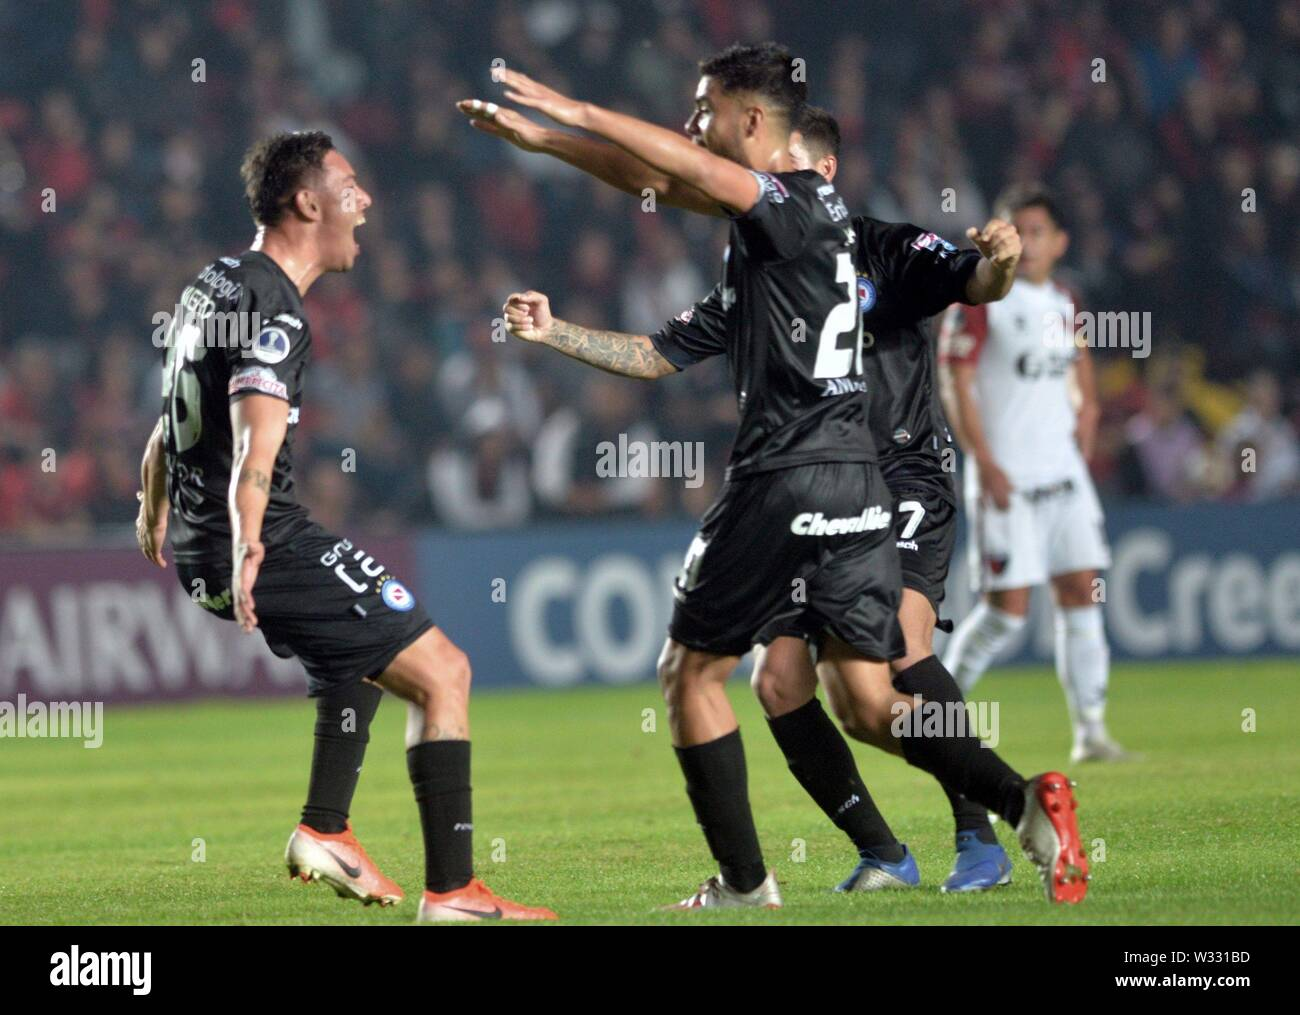 Santa Fe, Argentina. 12th July, 2019. Players of Argentinos Juniors celebrate the 1-0 lead during the Copa Sudamericana round of 16 first leg match between Club Atletico Colon and Asociacion Atletica Argentinos Juniors at the Brigadier General Estanislao Lopez stadium in Santa Fe, Argentina, 11 July 2019. Credit: JAVIER ESCOBAR/EFE/Alamy Live News - Stock Image